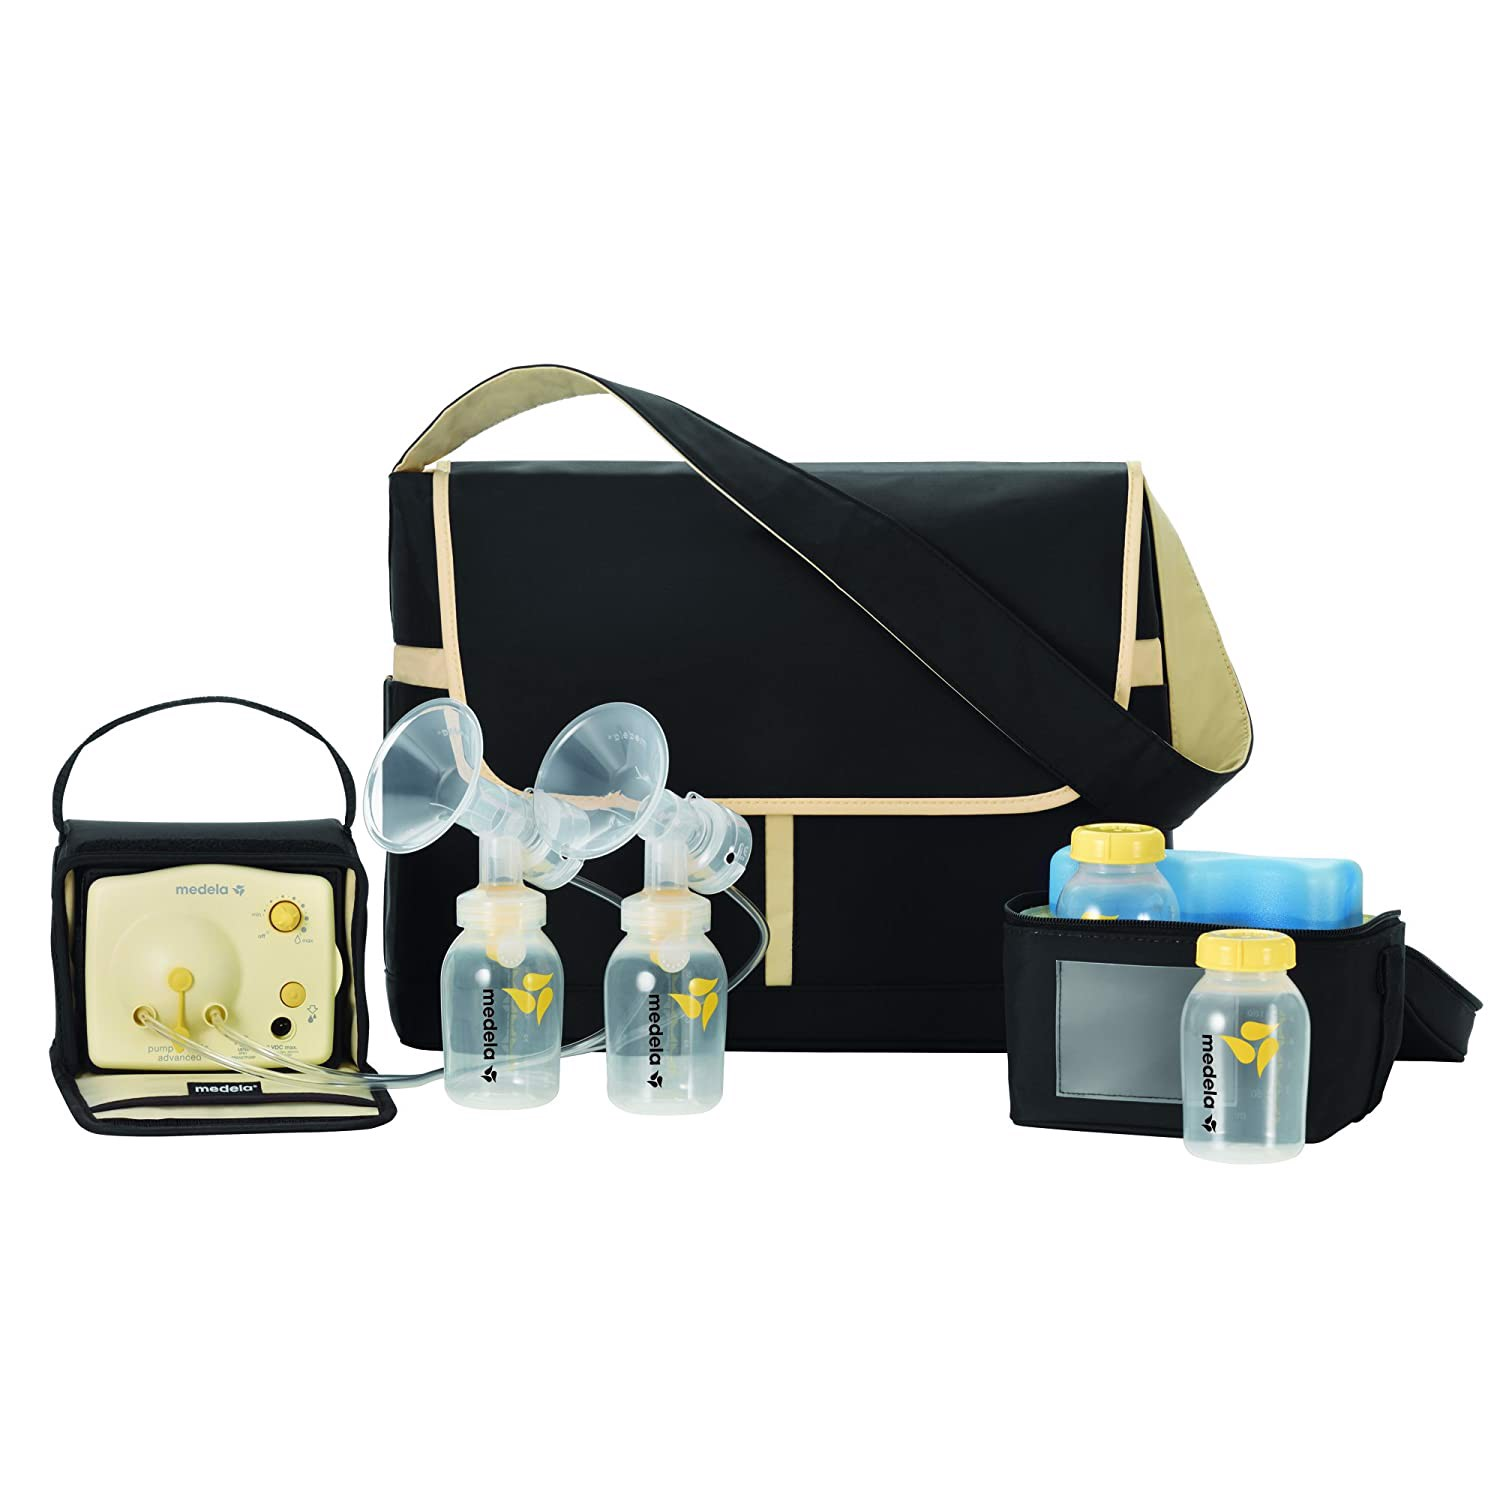 Máy hút sữa Medela Pump in Style Advanced Breast Pump with Backpack